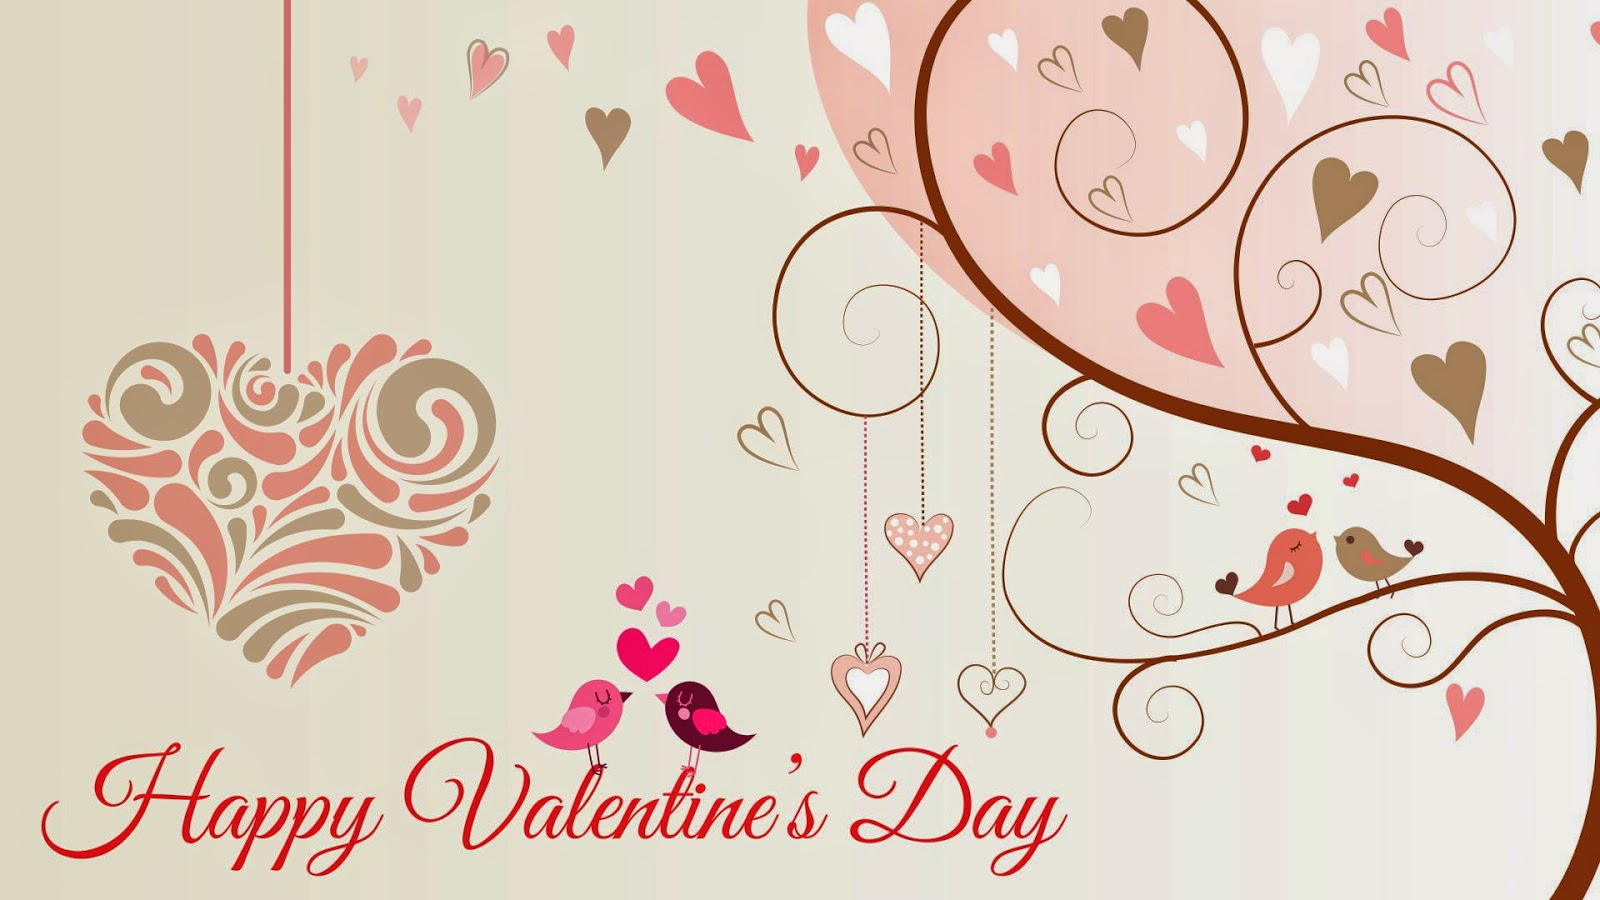 Valentines Love Quotes Happyvalentines Day 2018 Imagesquoteswishesmessagesstatus